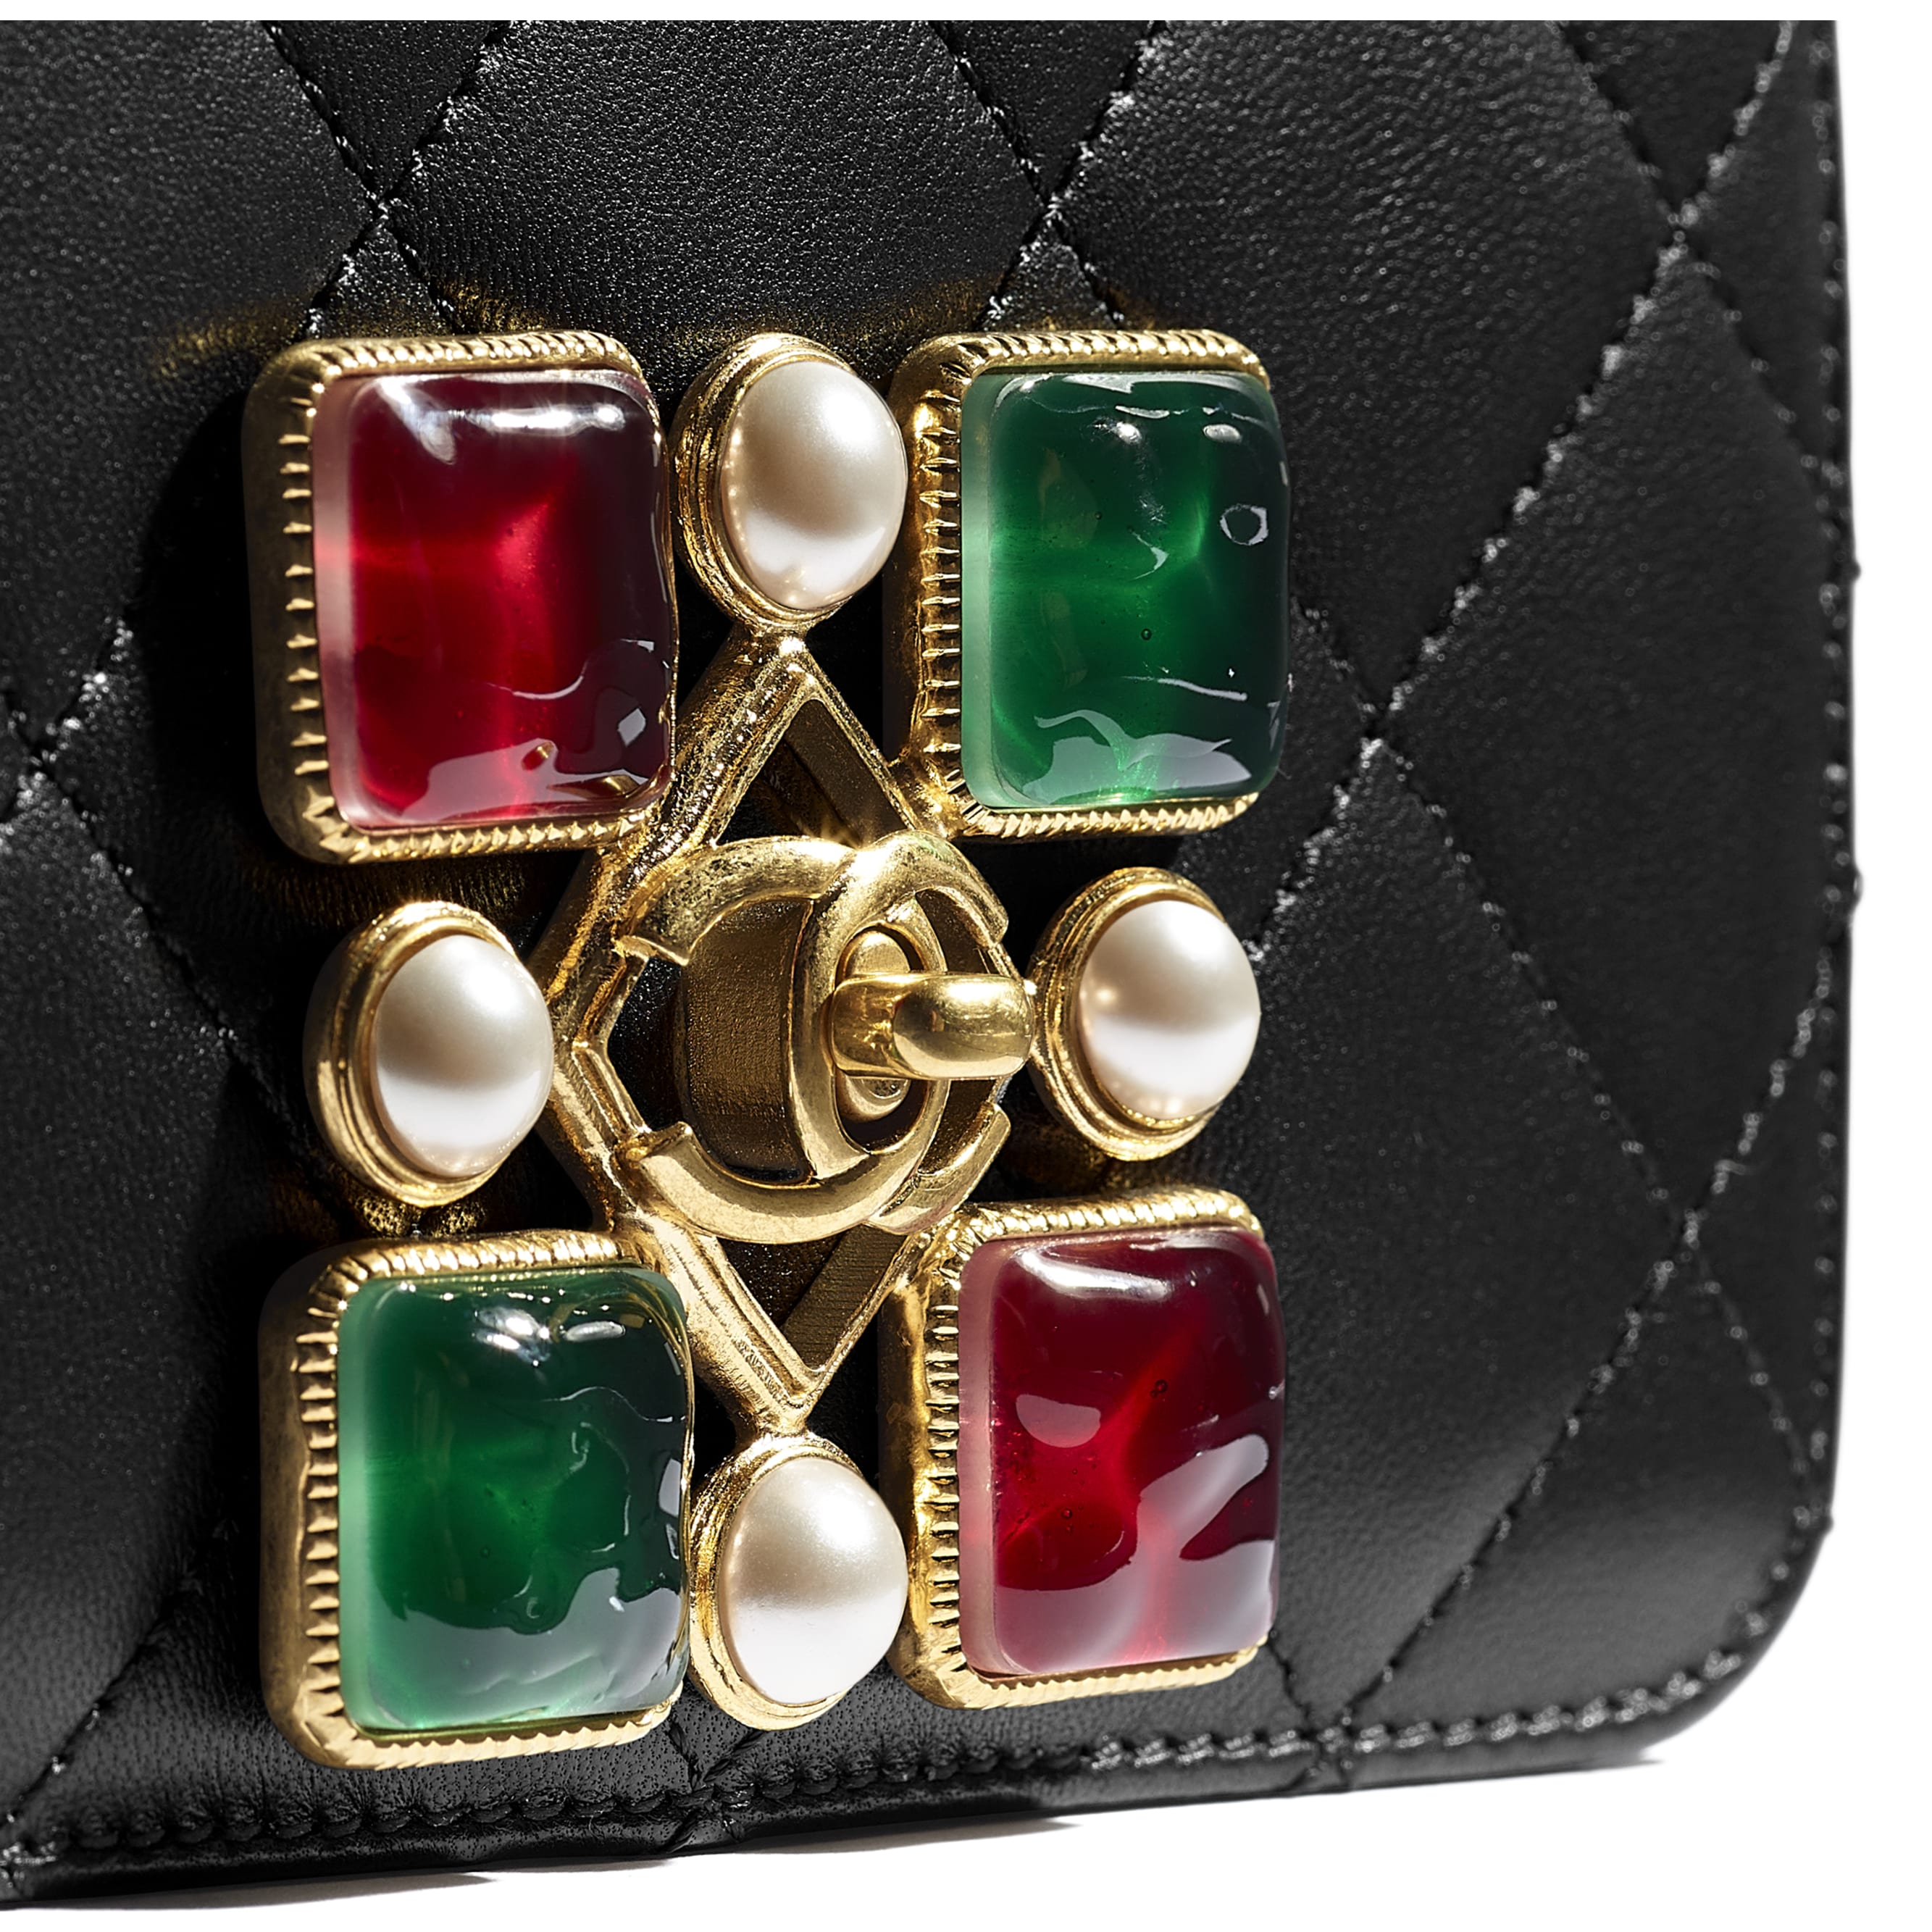 Small Flap Bag - Black, Red & Green - Calfskin, Crystal Pearls, Resin & Gold-Tone Metal - CHANEL - Extra view - see standard sized version